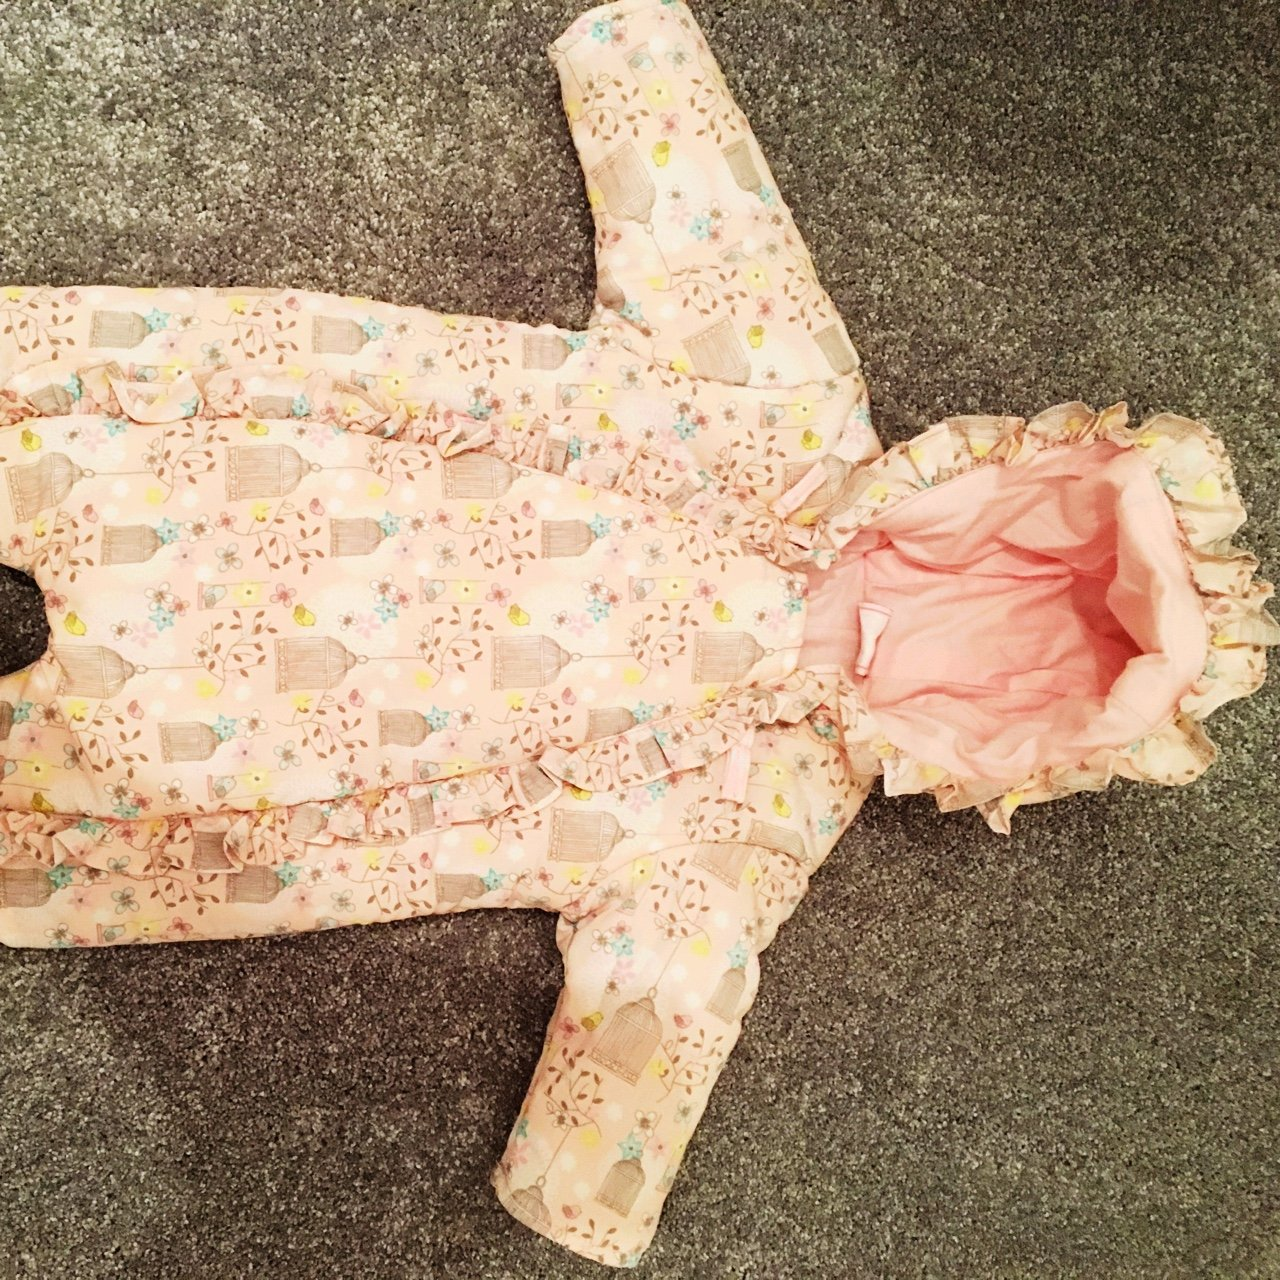 bd1f3352d Baby pink Chloe Louise snowsuit. Excellent condition worn a - Depop